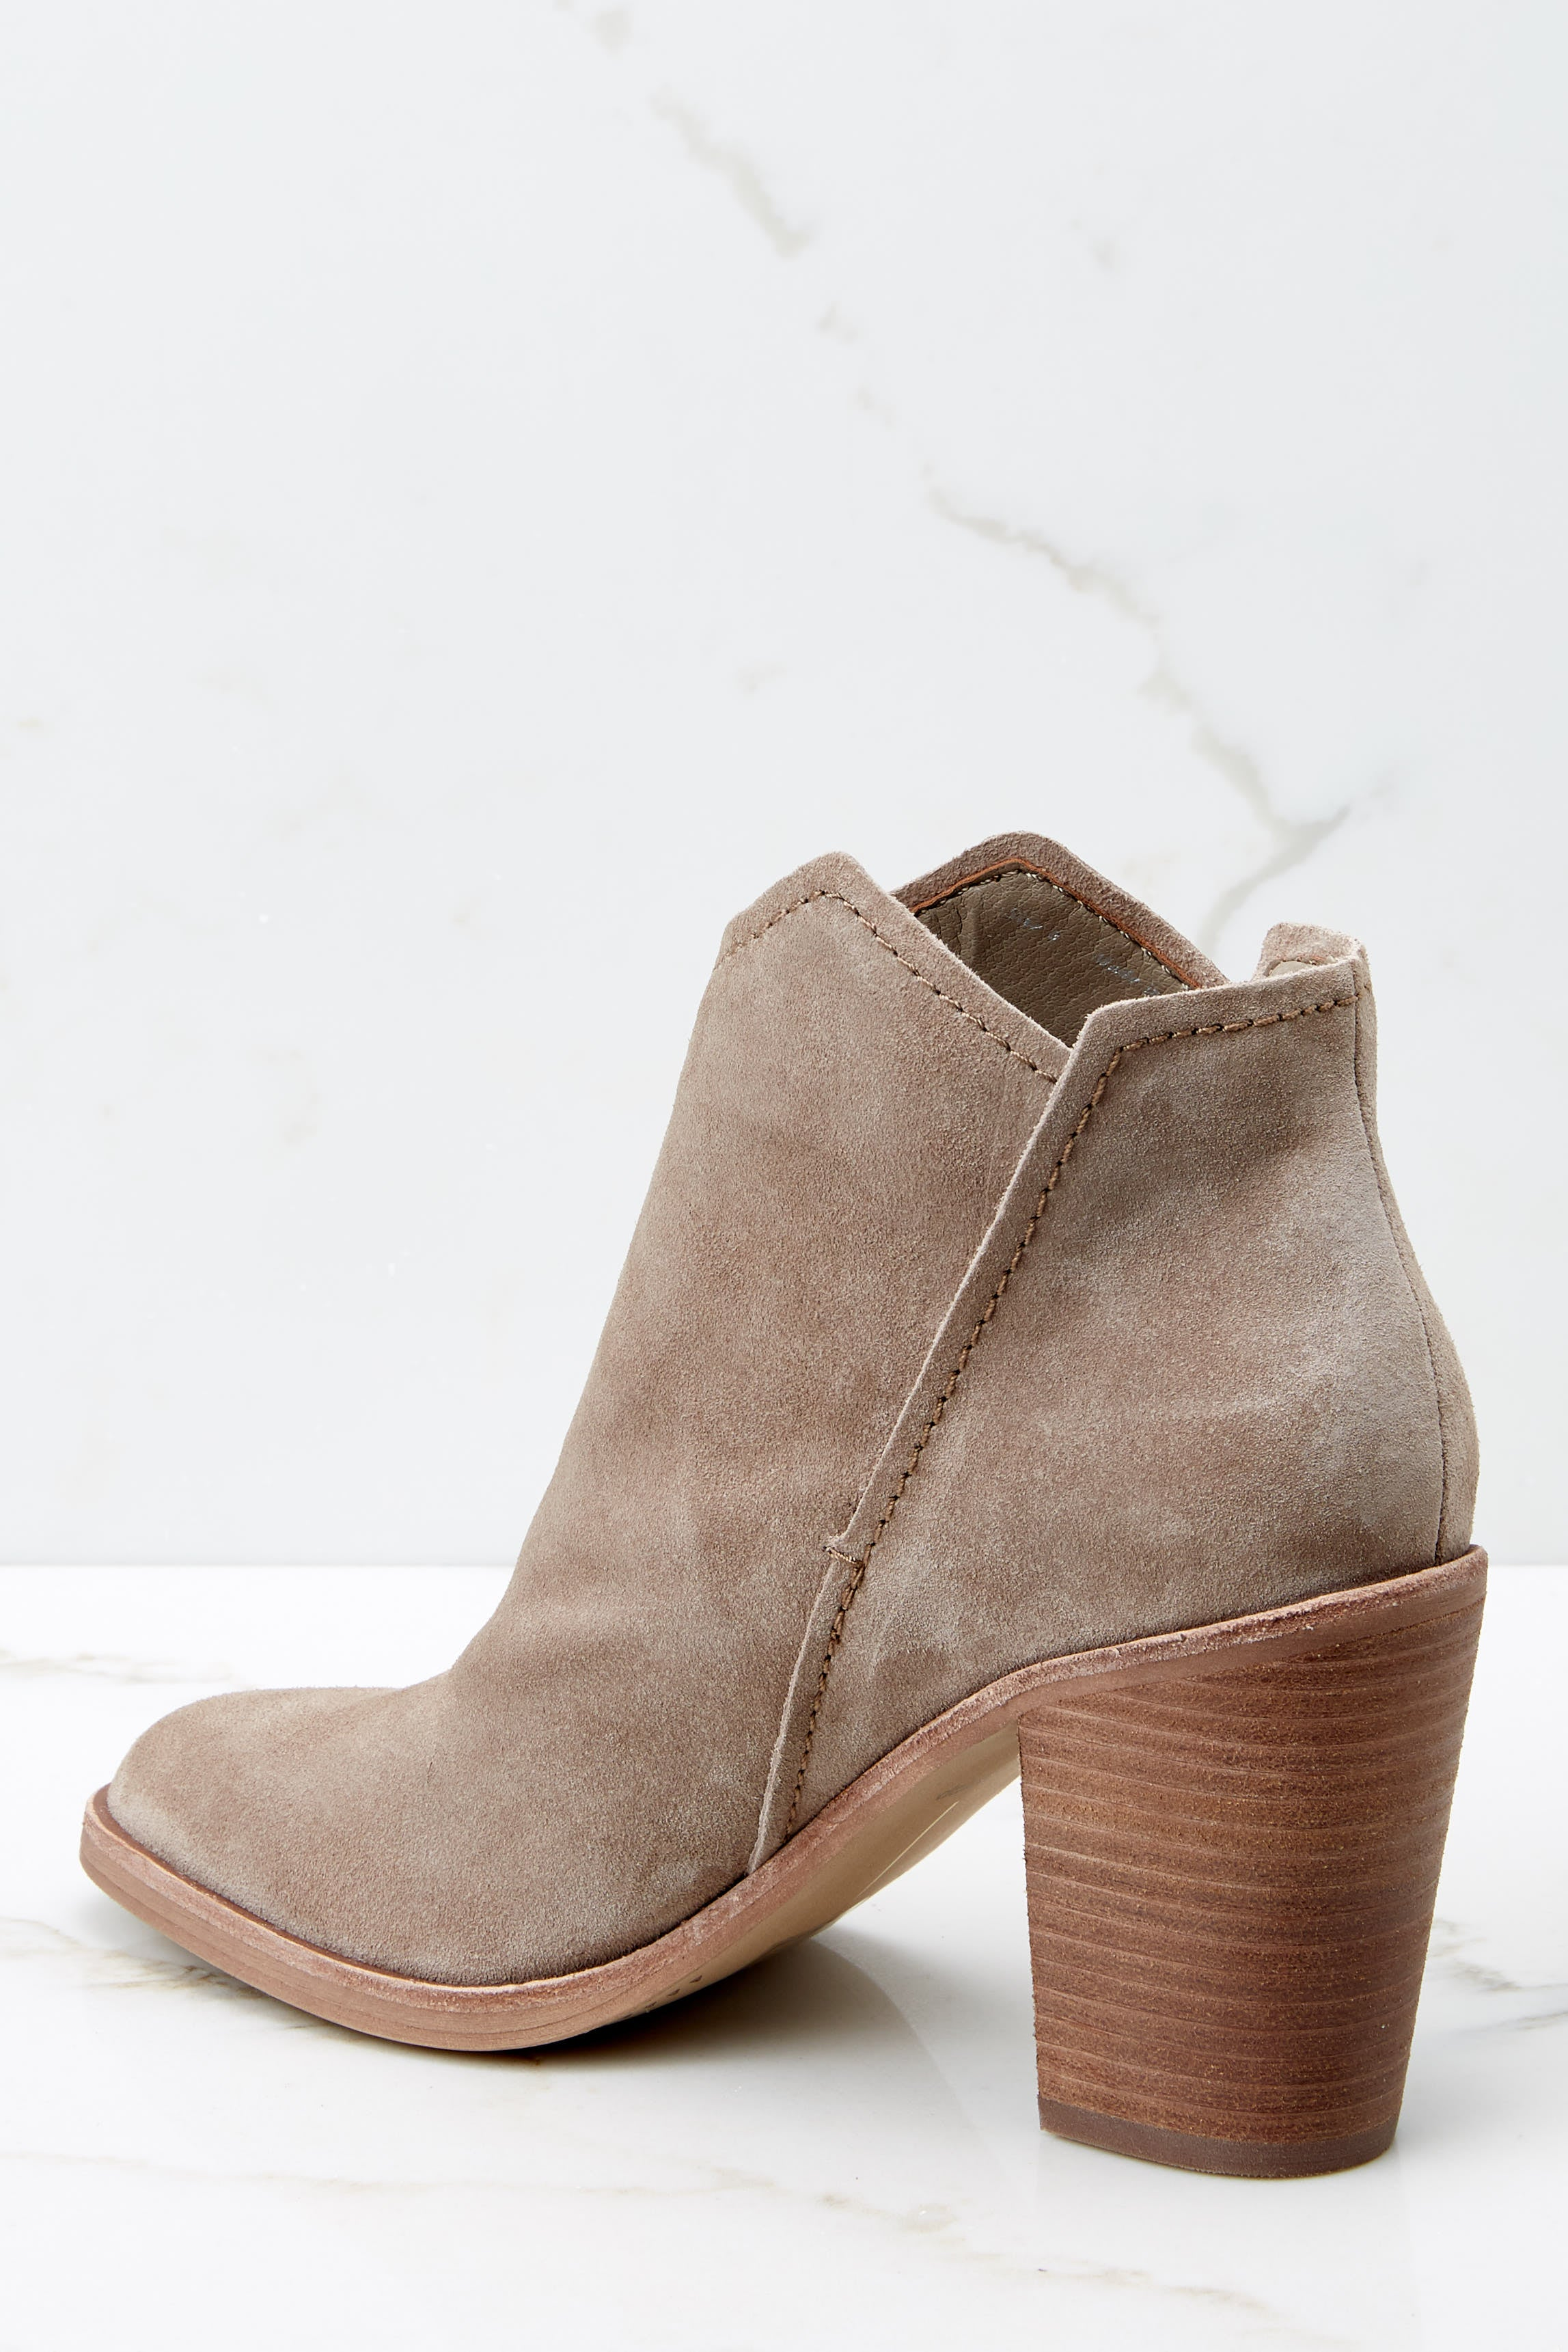 Shep Taupe Booties